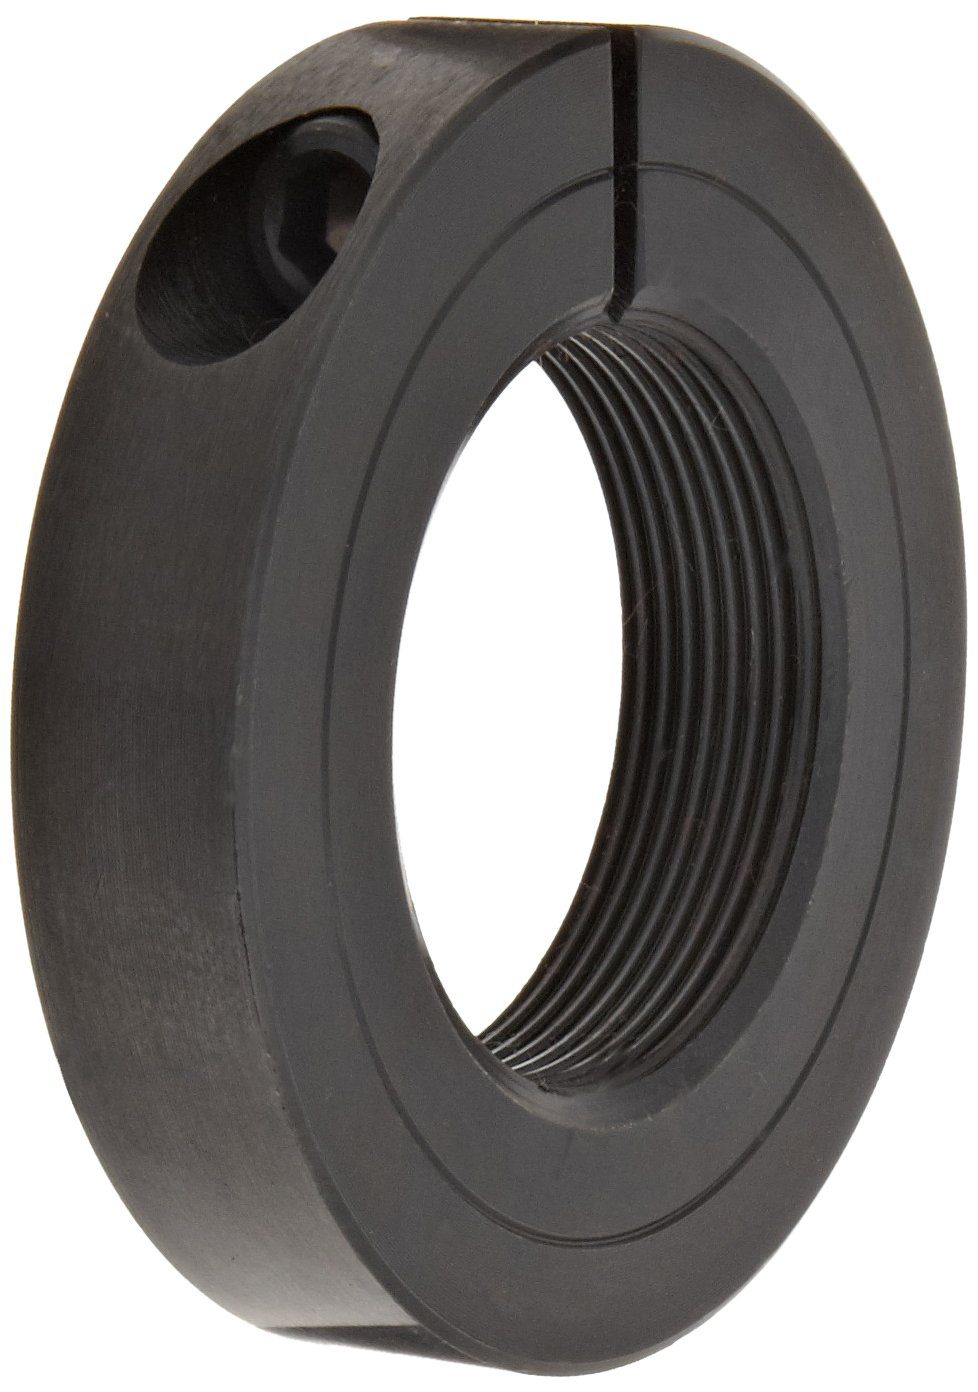 Climax Metal TC-112-12 One-Piece Threaded Clamping Collar with Recessed Screw, Black Oxide Plating, Steel, 1-1/8